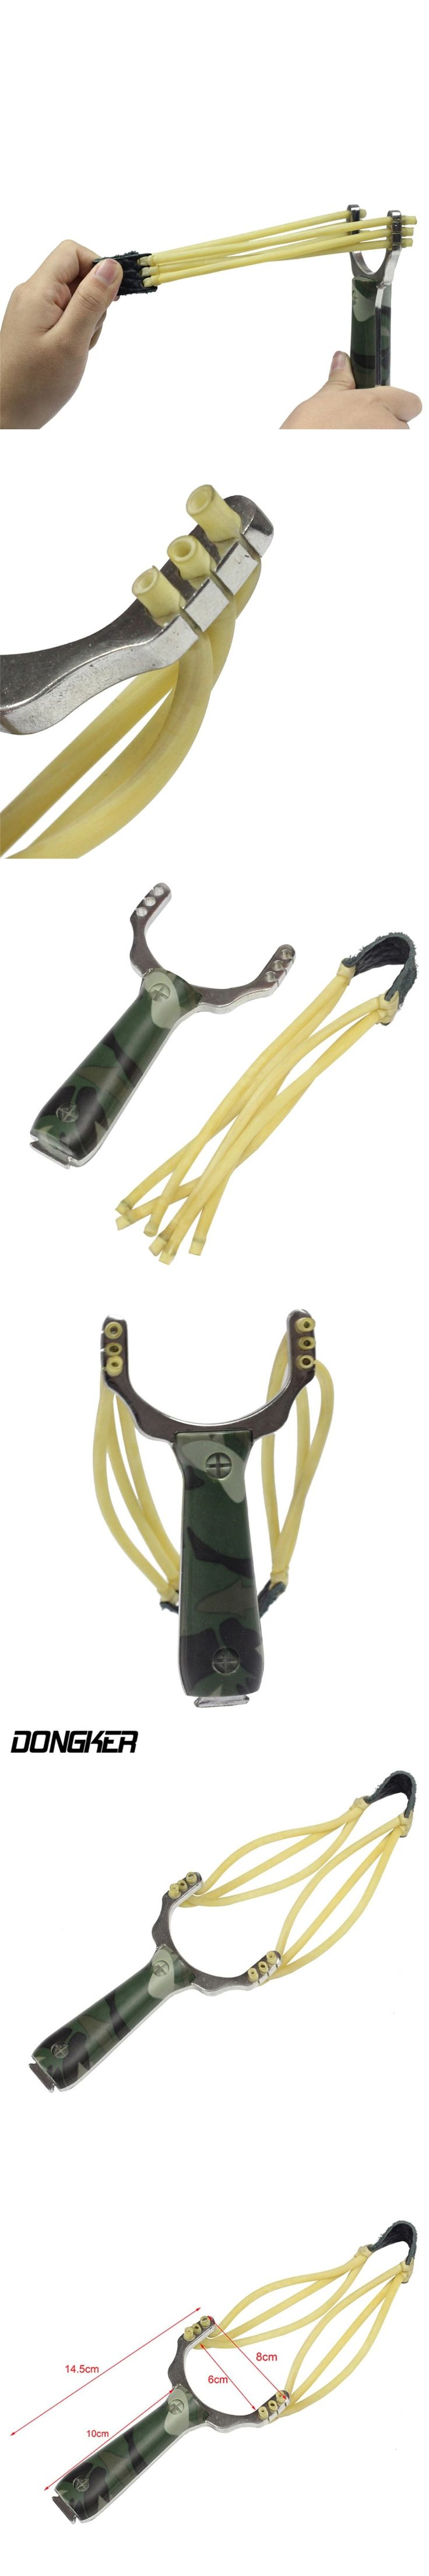 Outdoor Hunting Camouflage Slingshot Tactical Shooting Accessory Elastic Natural Latex Rubber Band Powerful Portable Catapult